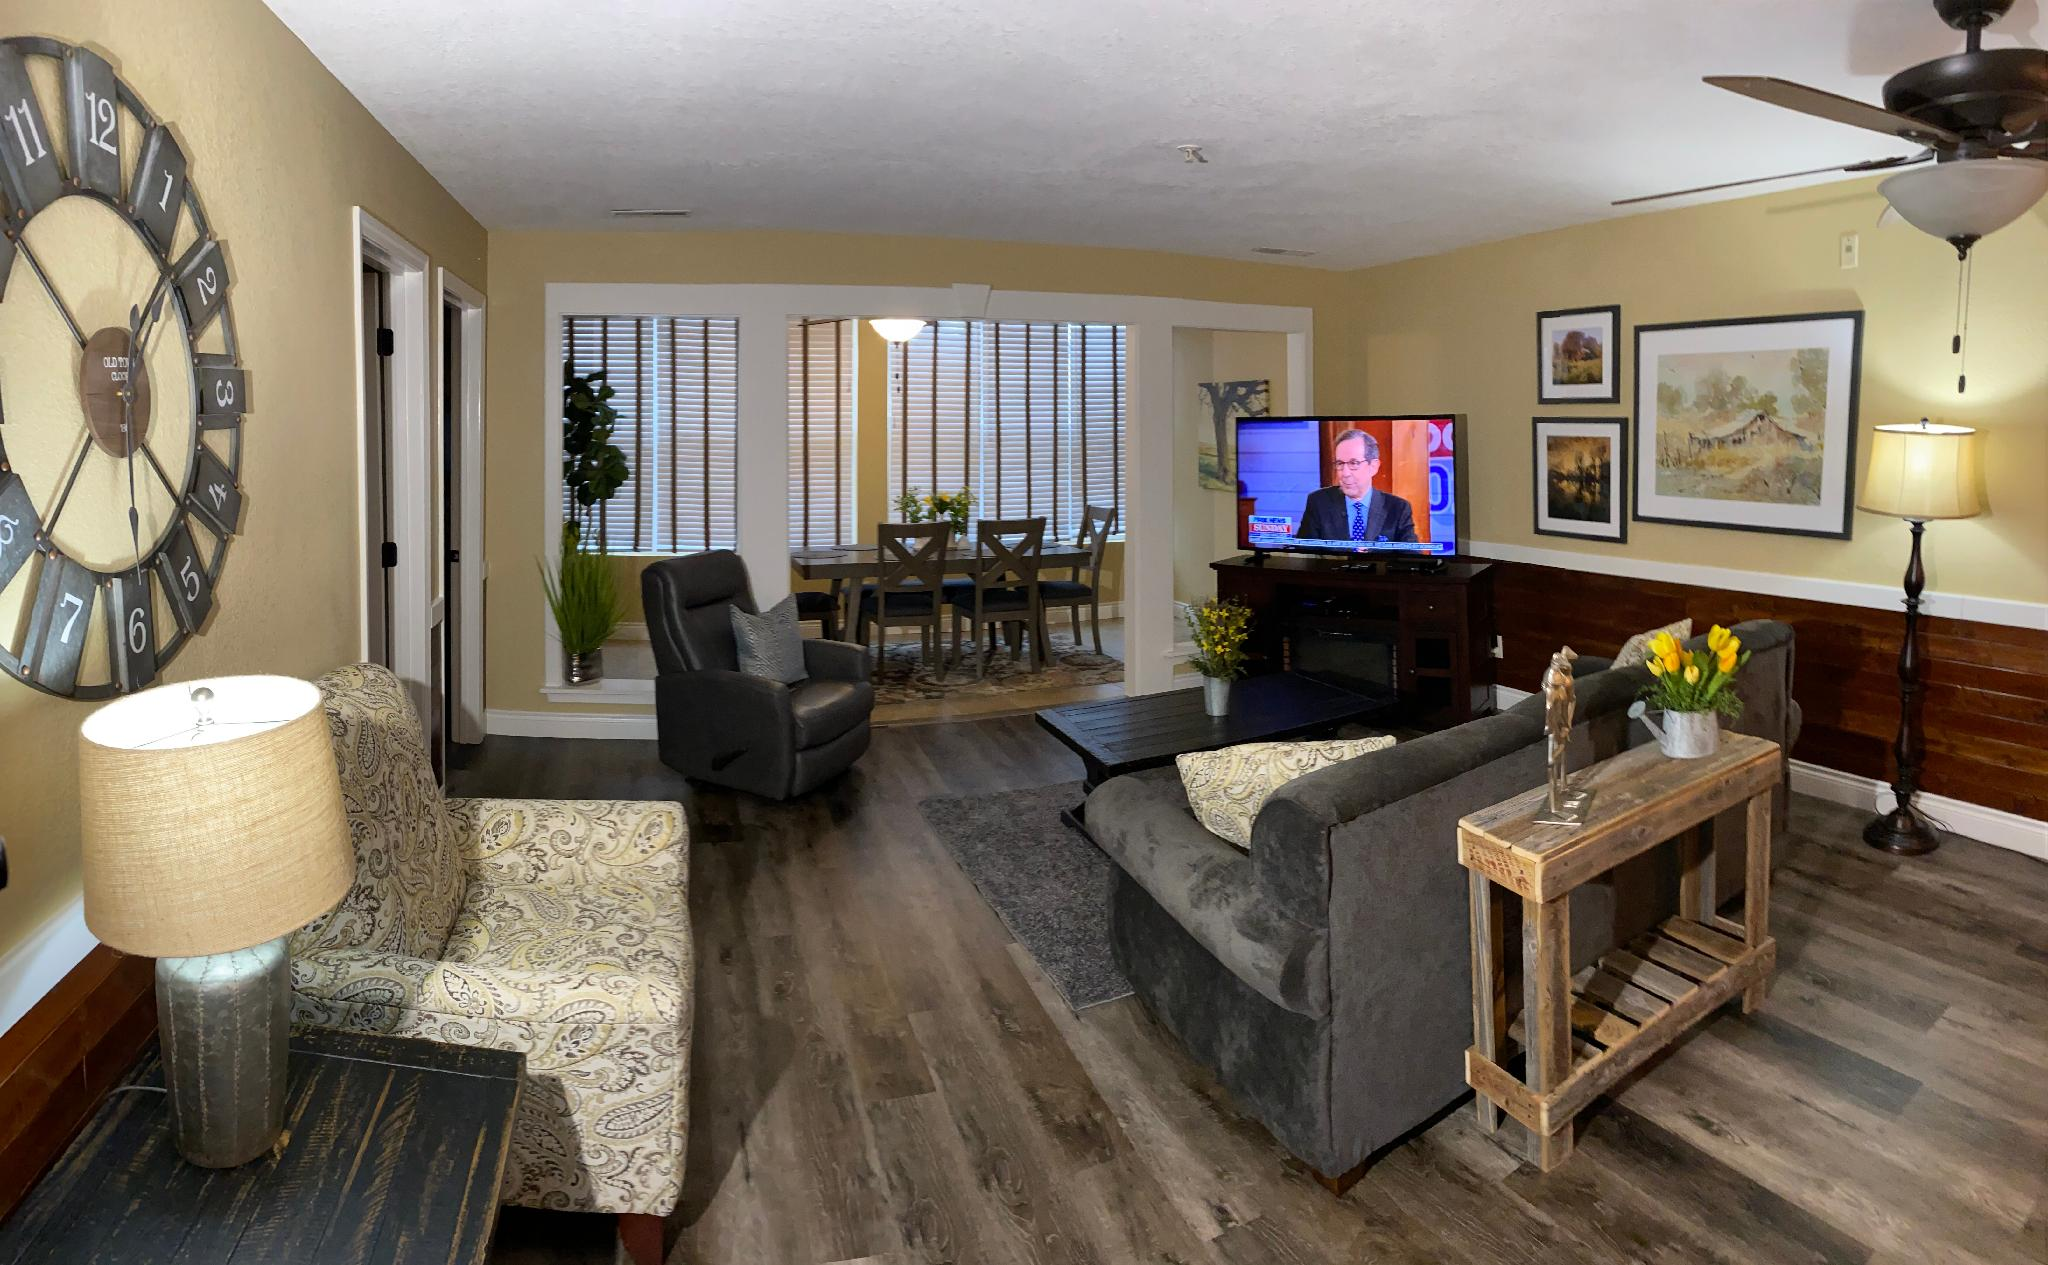 2 Bedroom Walk In Condo, Near the Strip, 1000 Hills Golf View, Sleeps 8:Club C-7